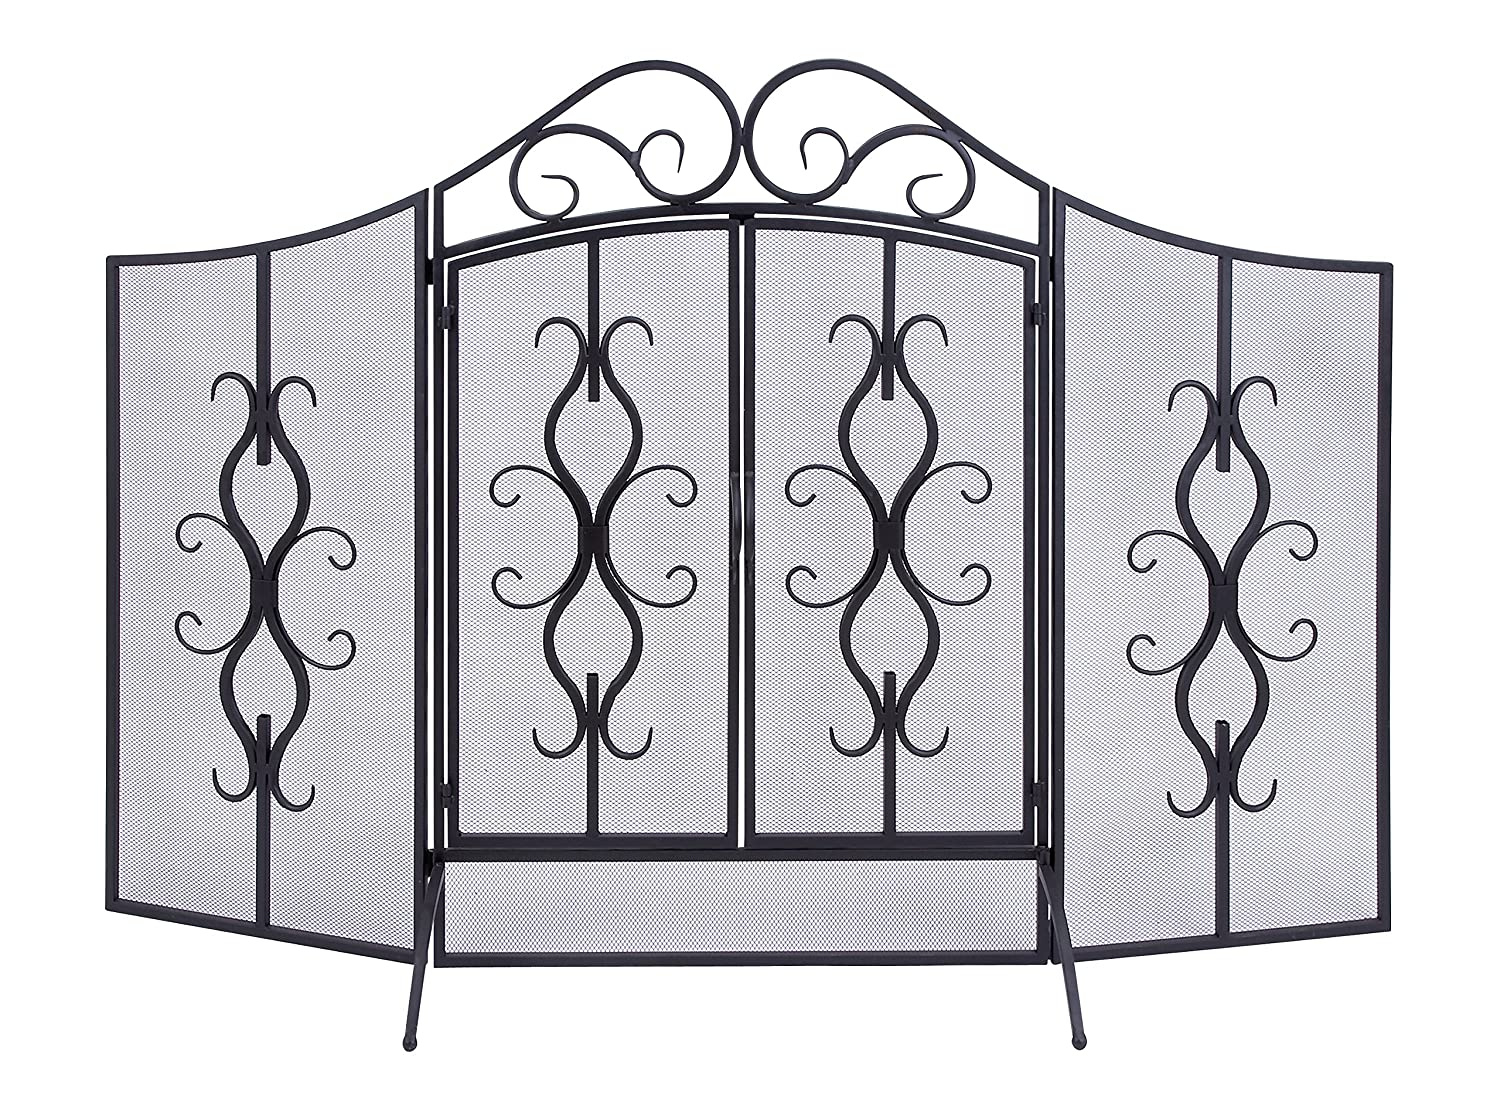 Deco 79 Metal Fire Screen, 60 by 40-Inch Deco Seventy-Nine 63348